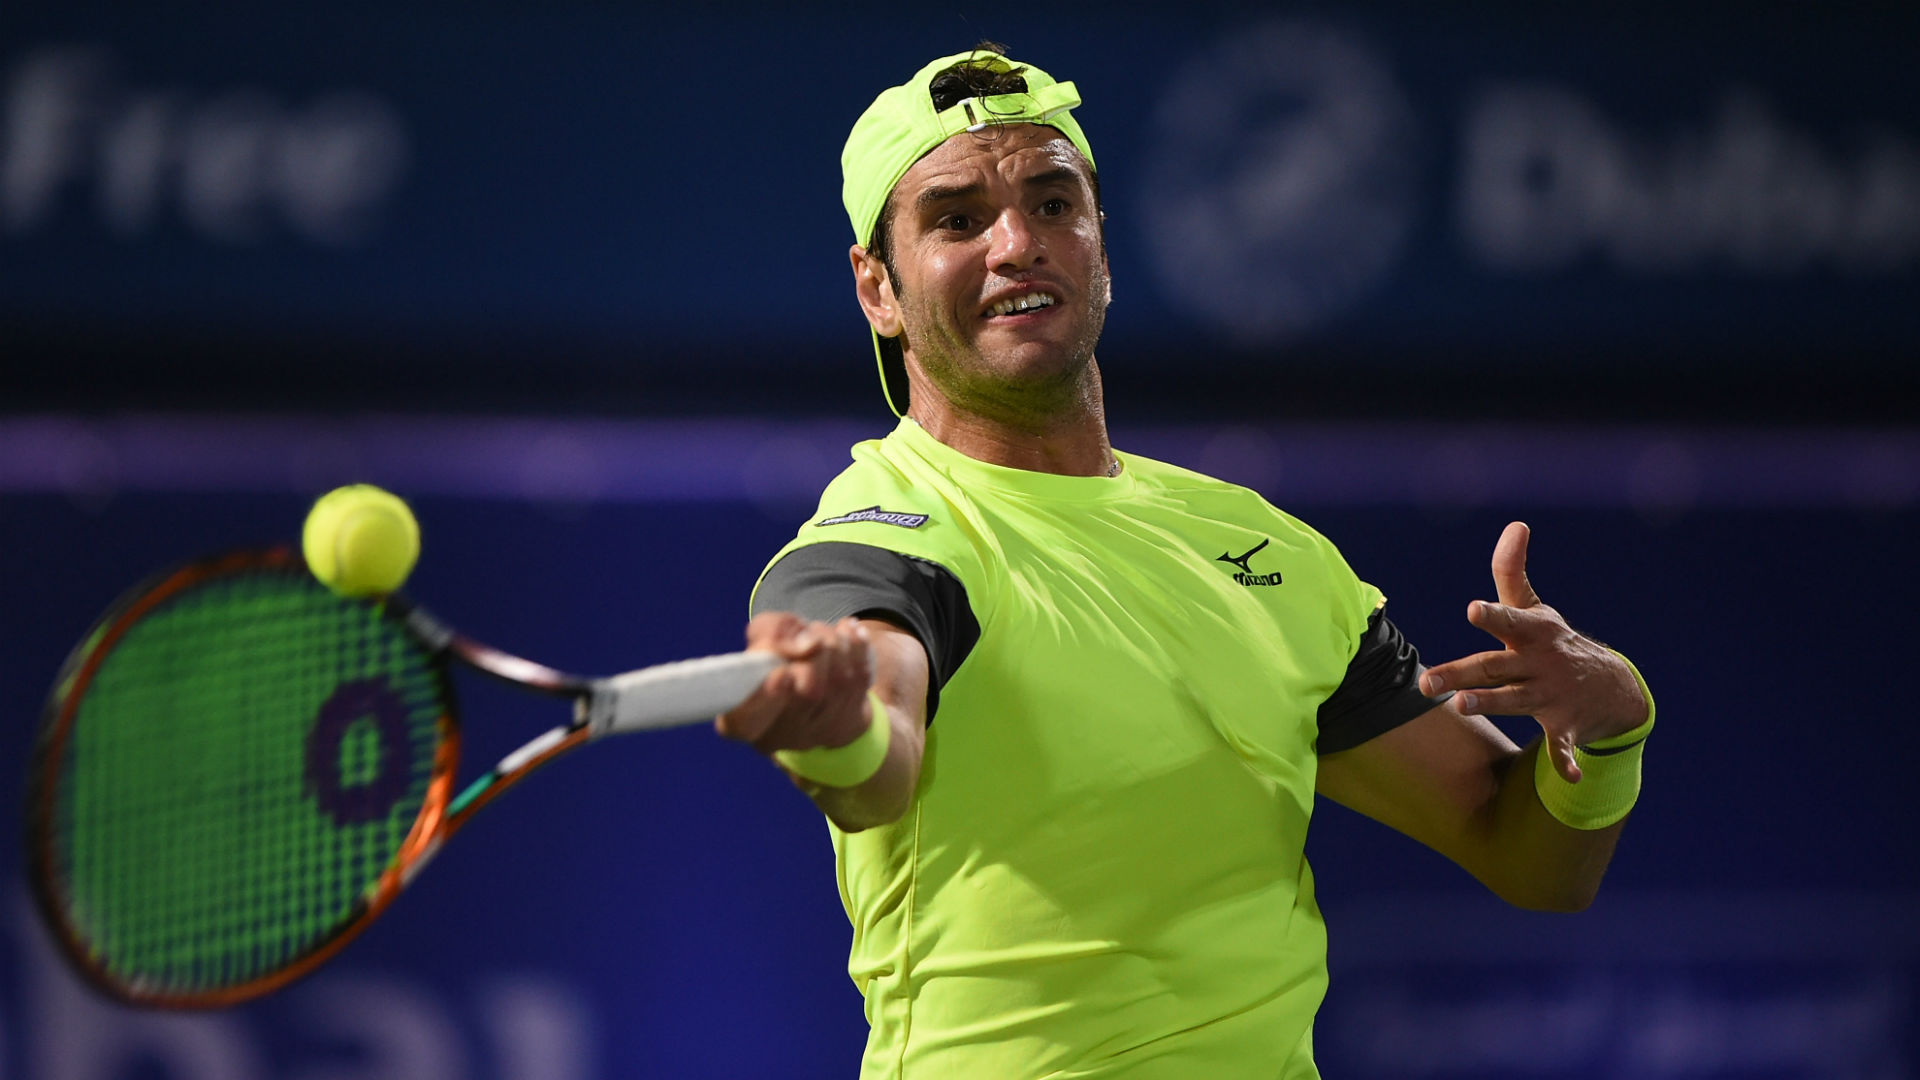 Following his upset win against Grigor Dimitrov, Malek Jaziri marched on at the Dubai Tennis Championships on Wednesday.